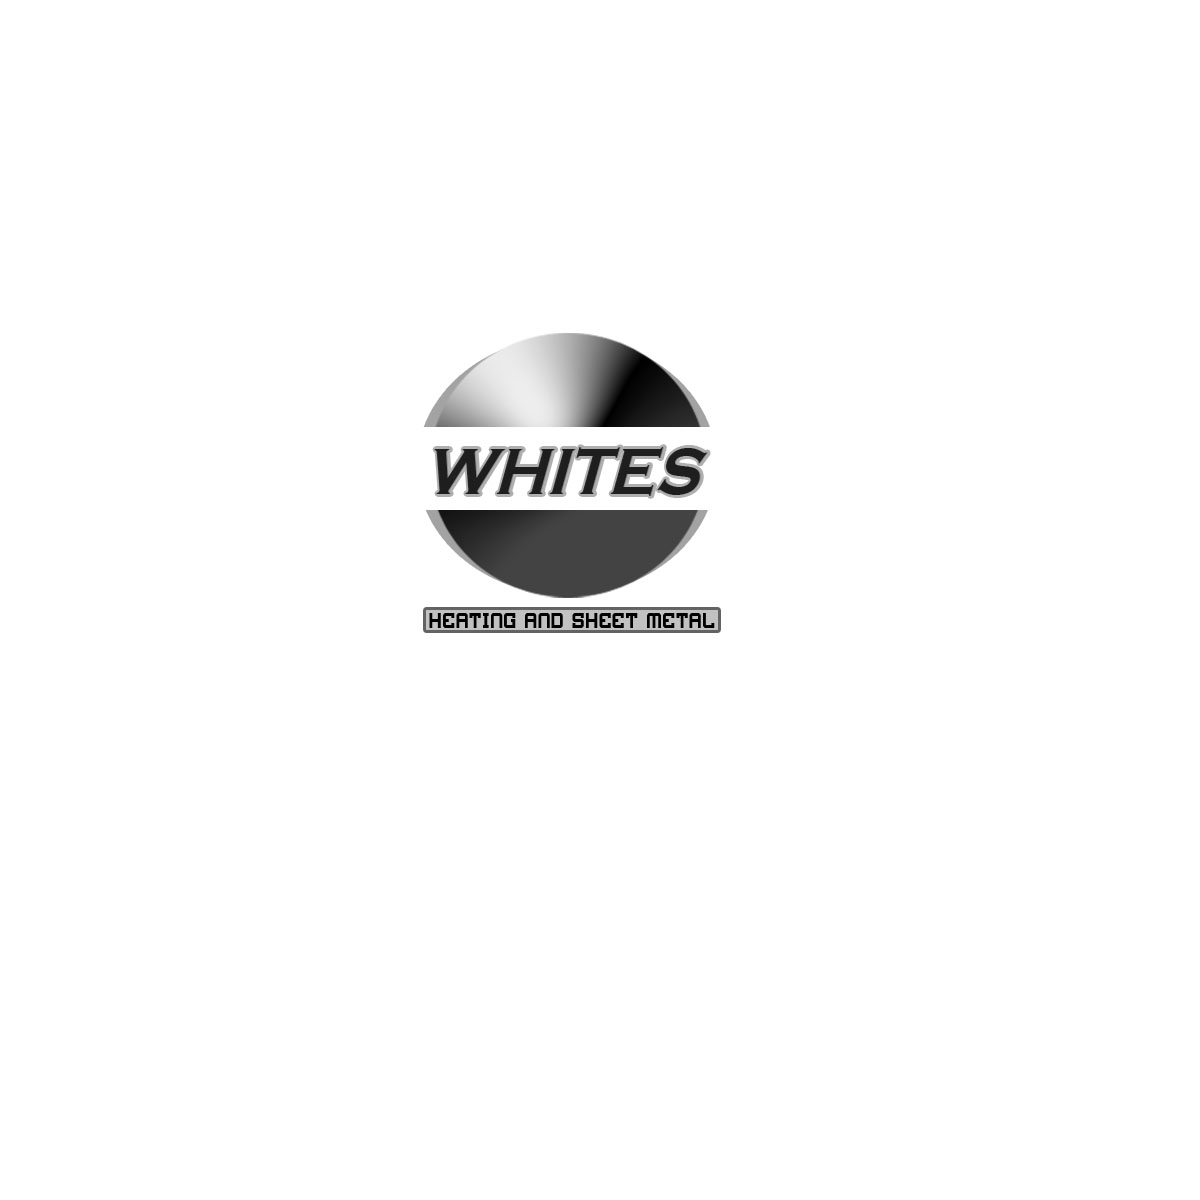 Logo Design by Moag - Entry No. 185 in the Logo Design Contest Imaginative Logo Design for White's Heating and Sheet Metal.